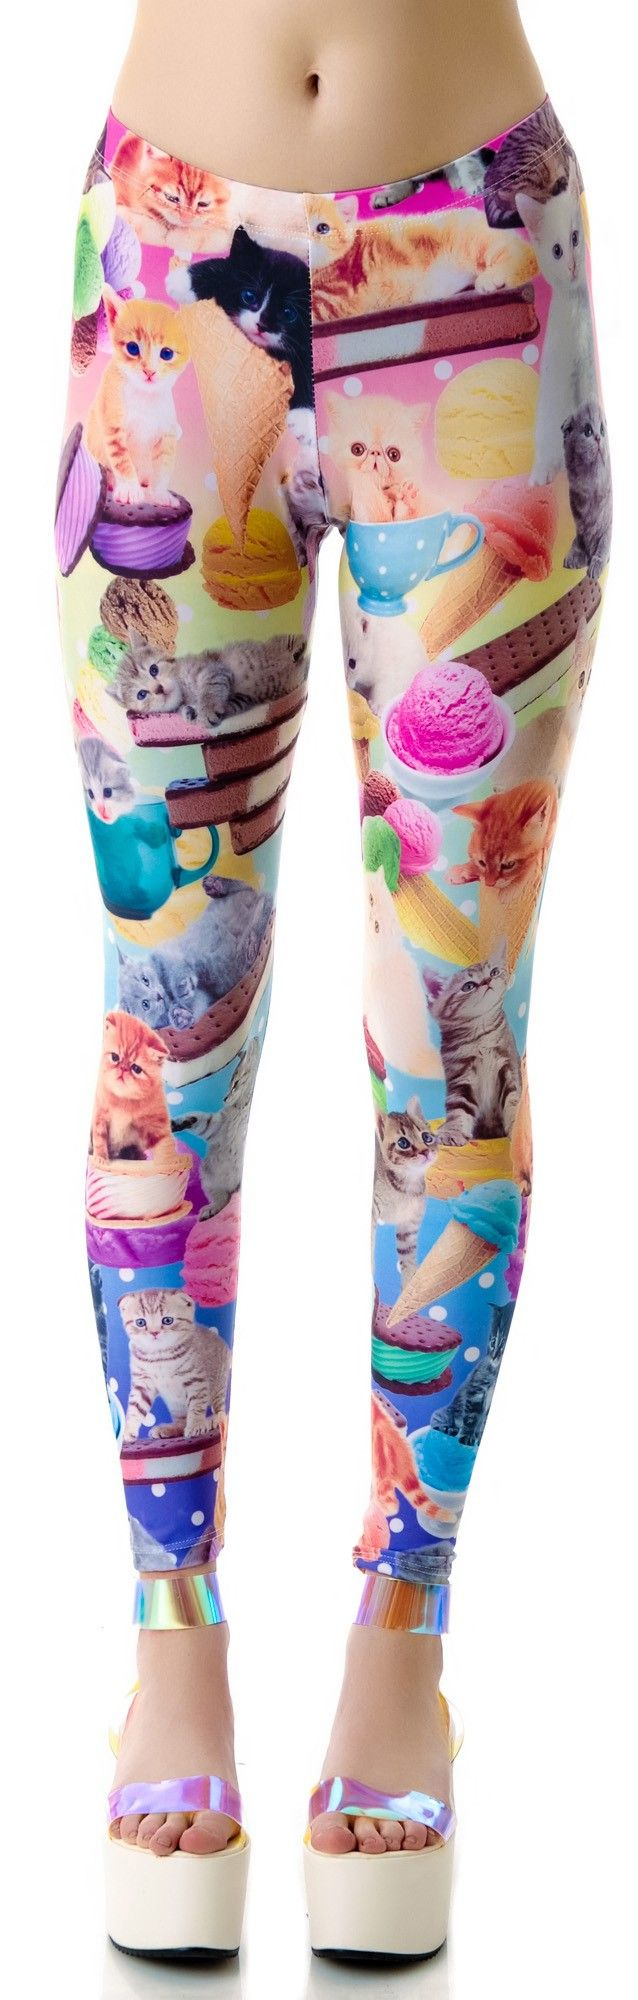 These are so ridiculous! They very subtly say crazy cat lady